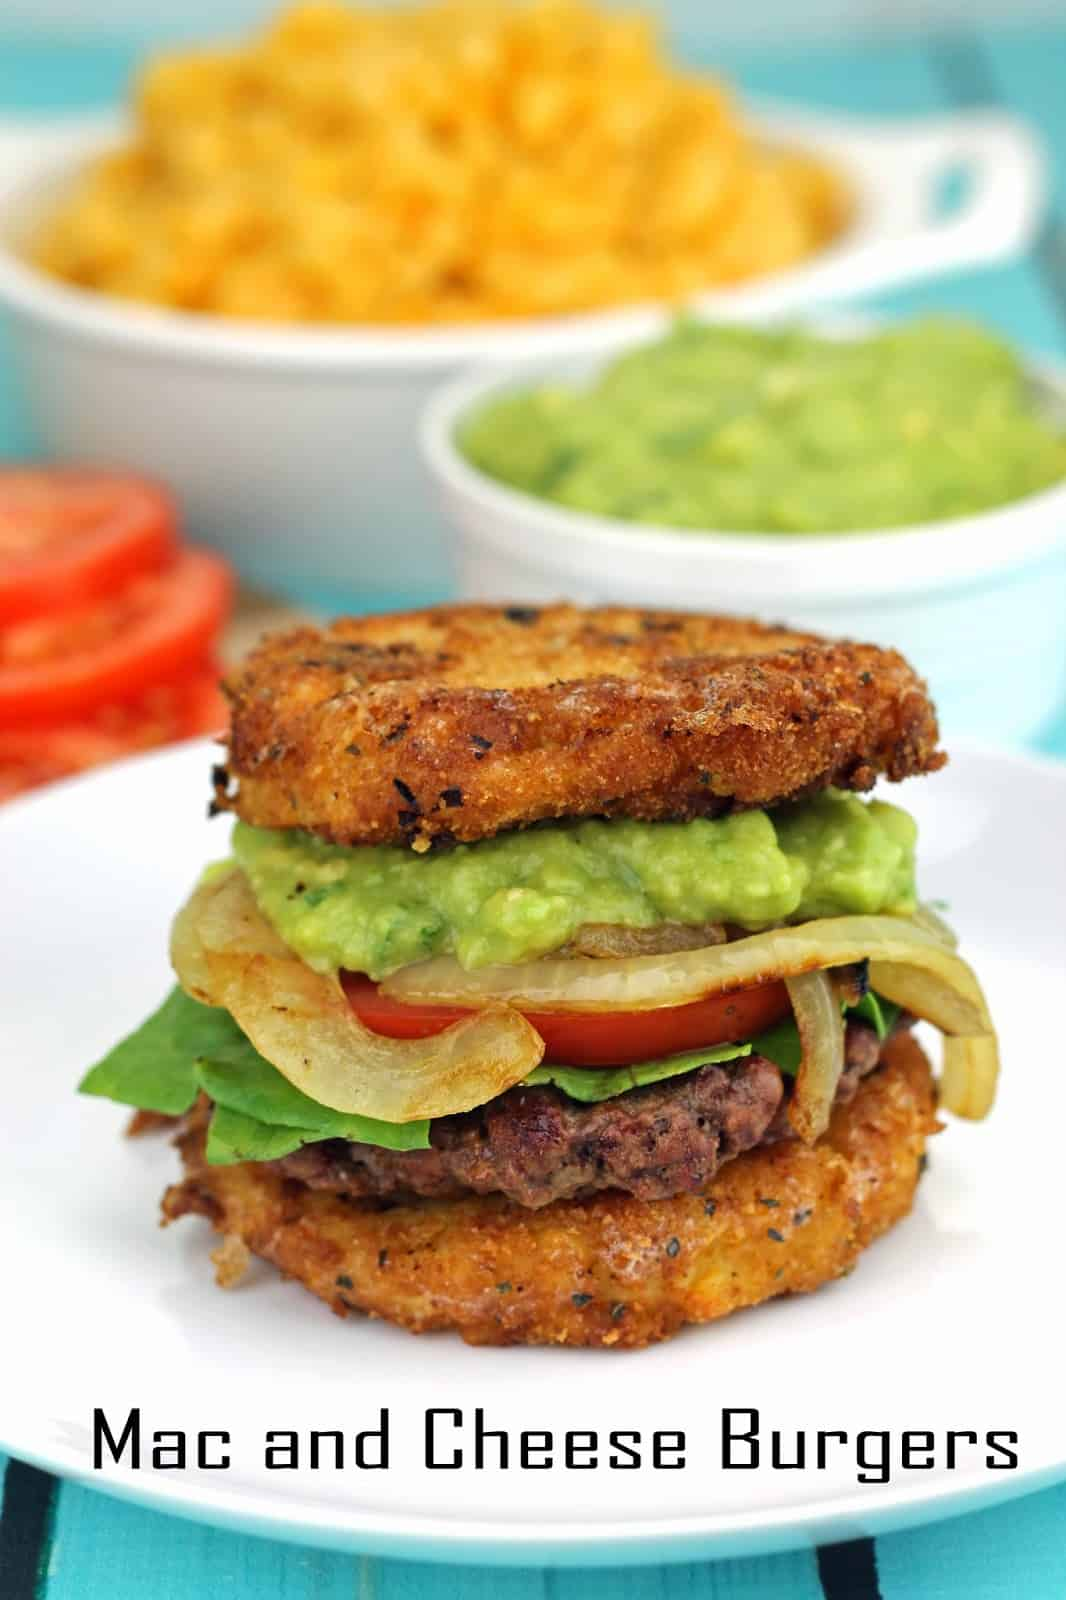 Mac and Cheese Burgers with Guacamole and Grilled Onions sitting on a white plate.